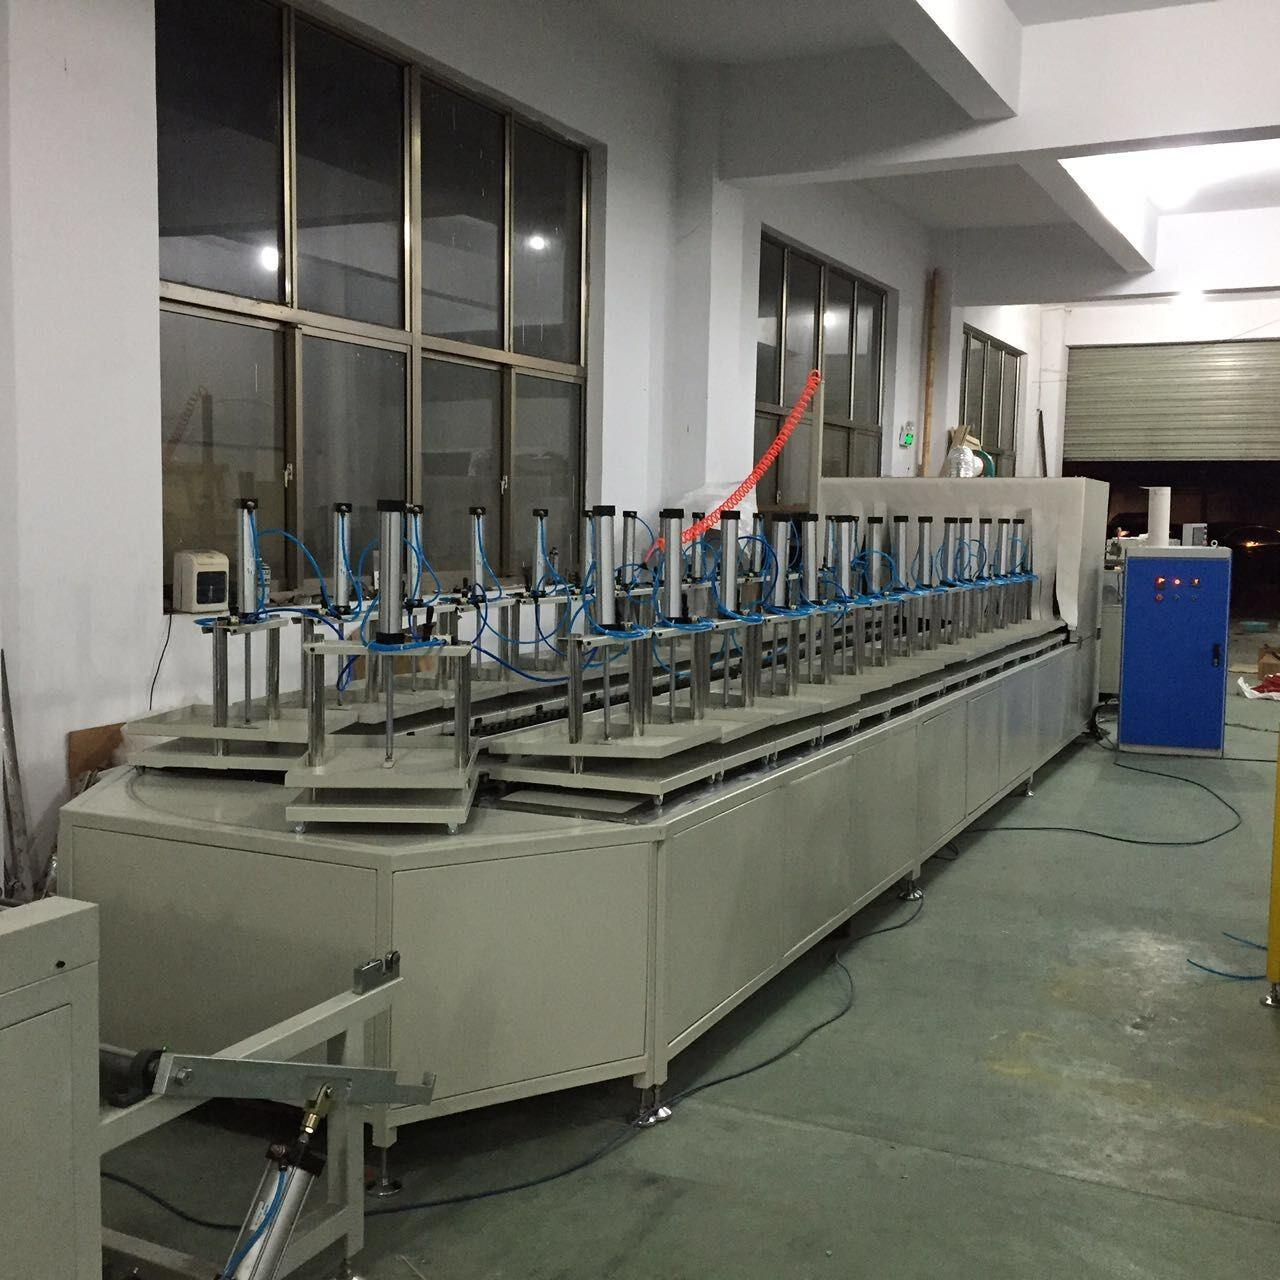 Wholesale Auto 36 Stations Air Filter Making Machine for HDAF Turntable Curing Worktable from china suppliers